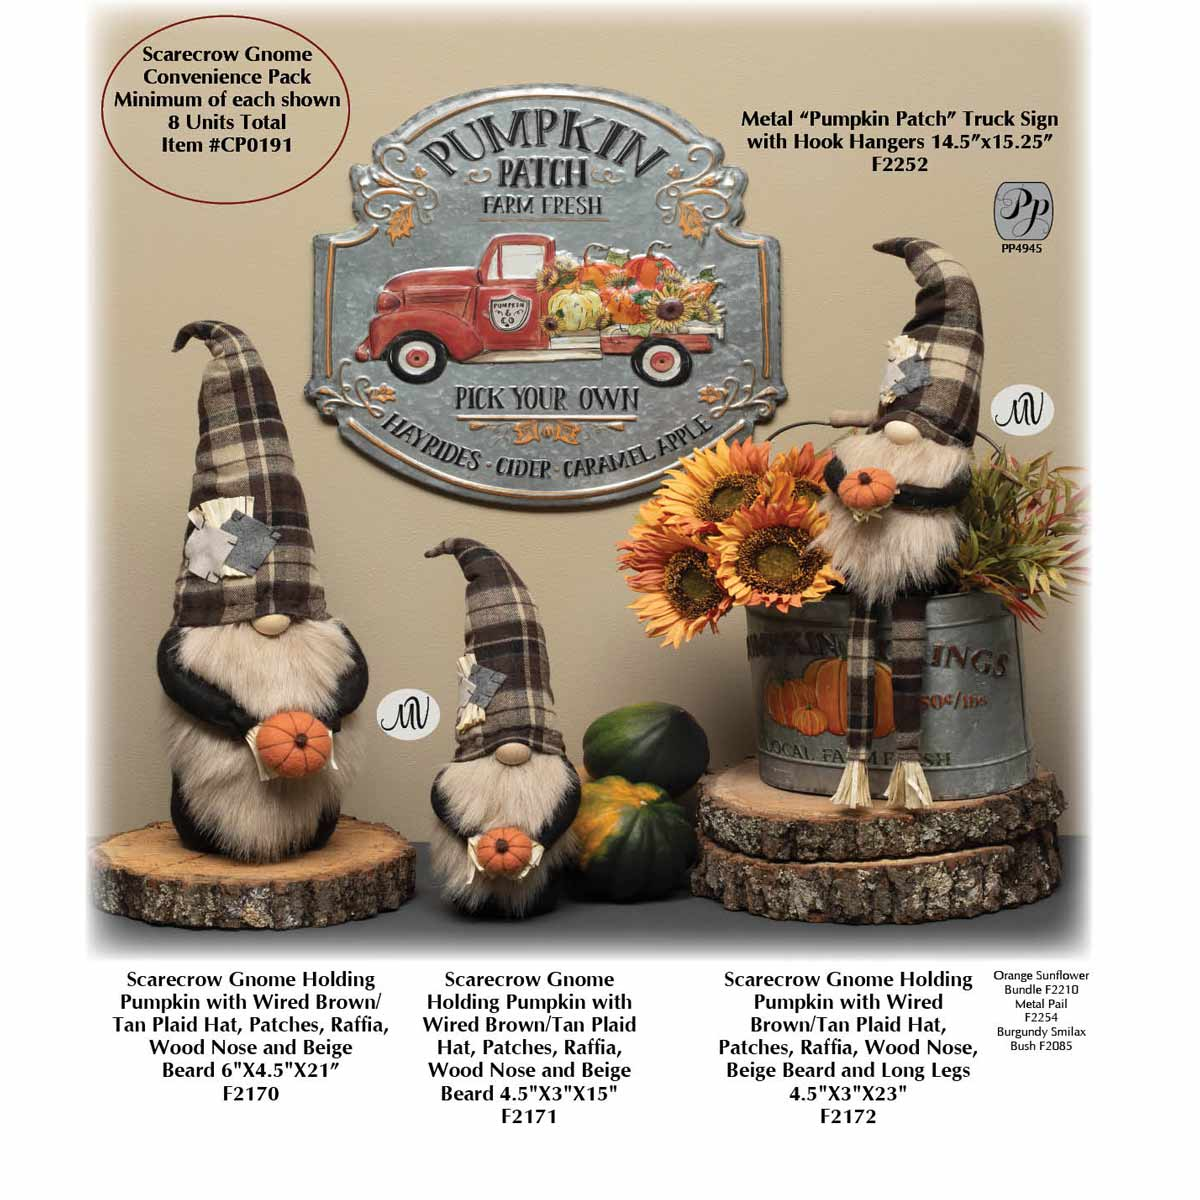 SCARECROW GNOME CONVENIENCE PACK 8 UNITS CP0191